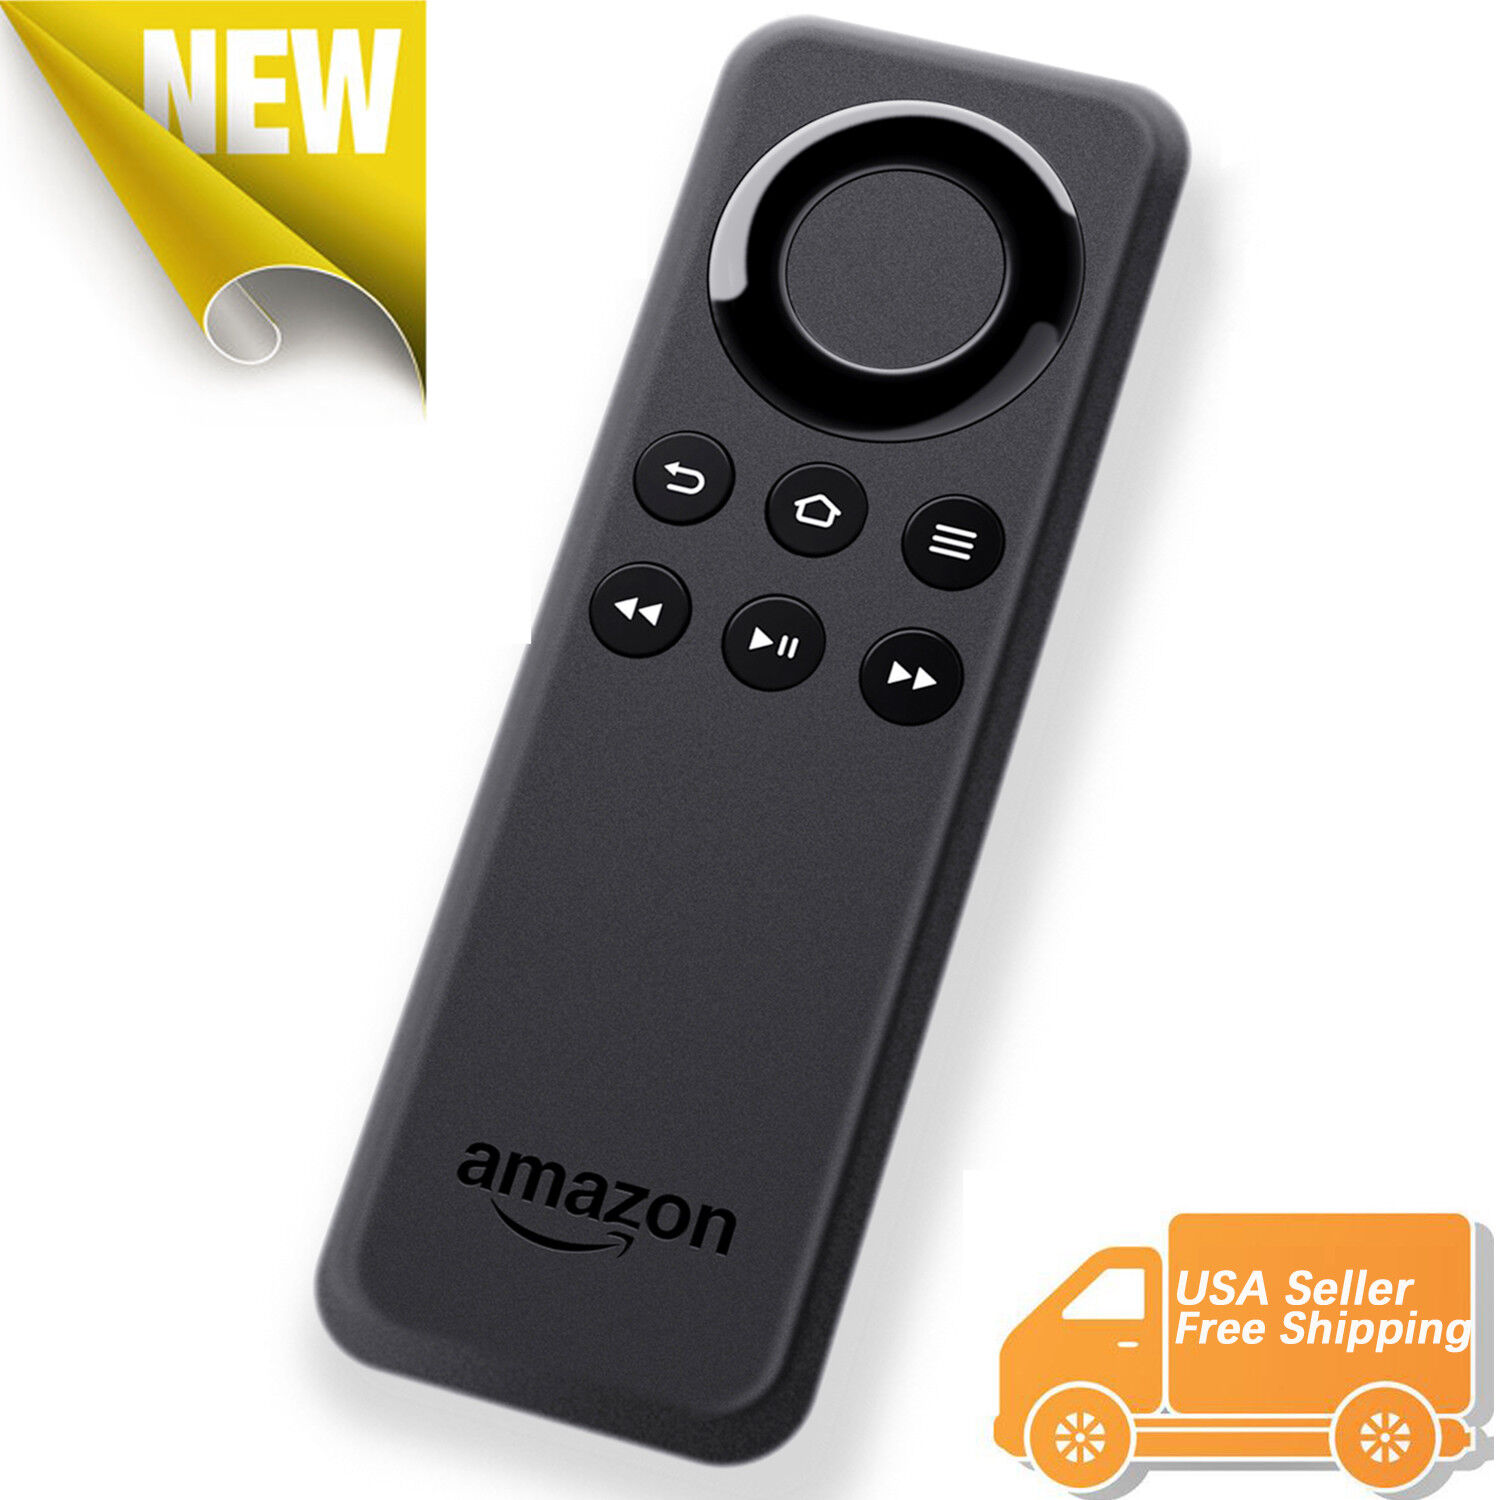 Remote Control Replacement for Amazon Fire Stick TV Streamin